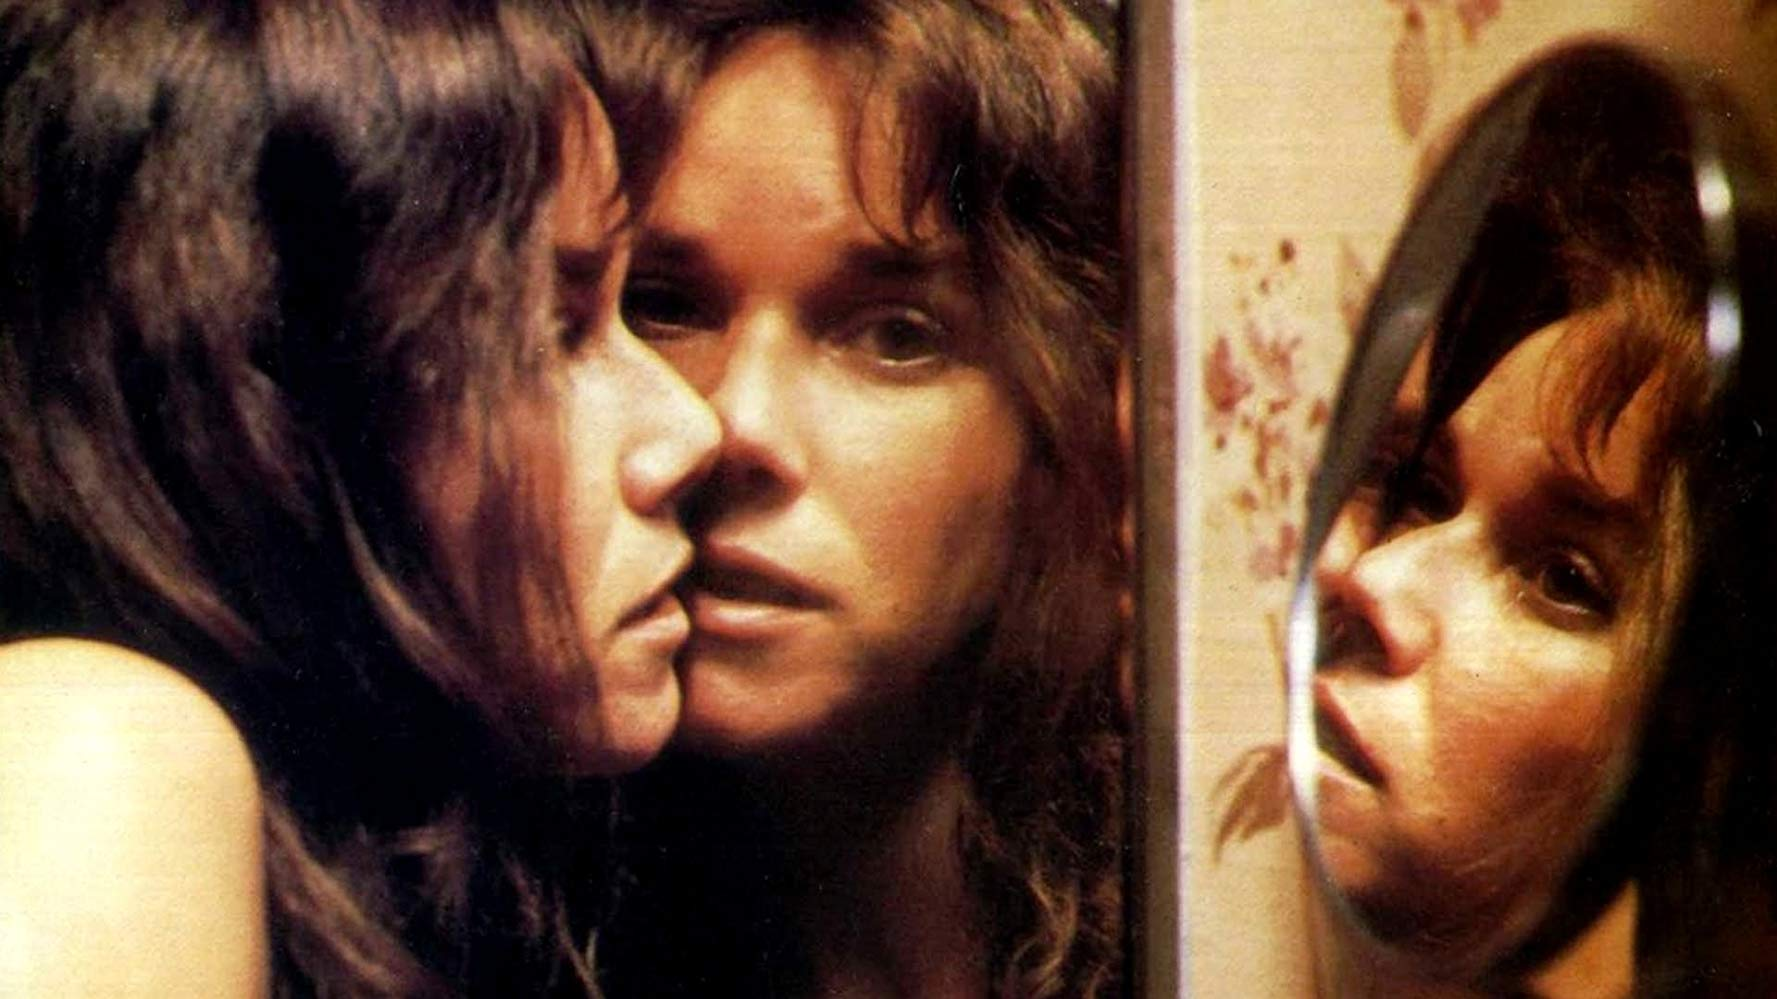 Barbara Hershey under assault by a poltergeist in The Entity (1982)